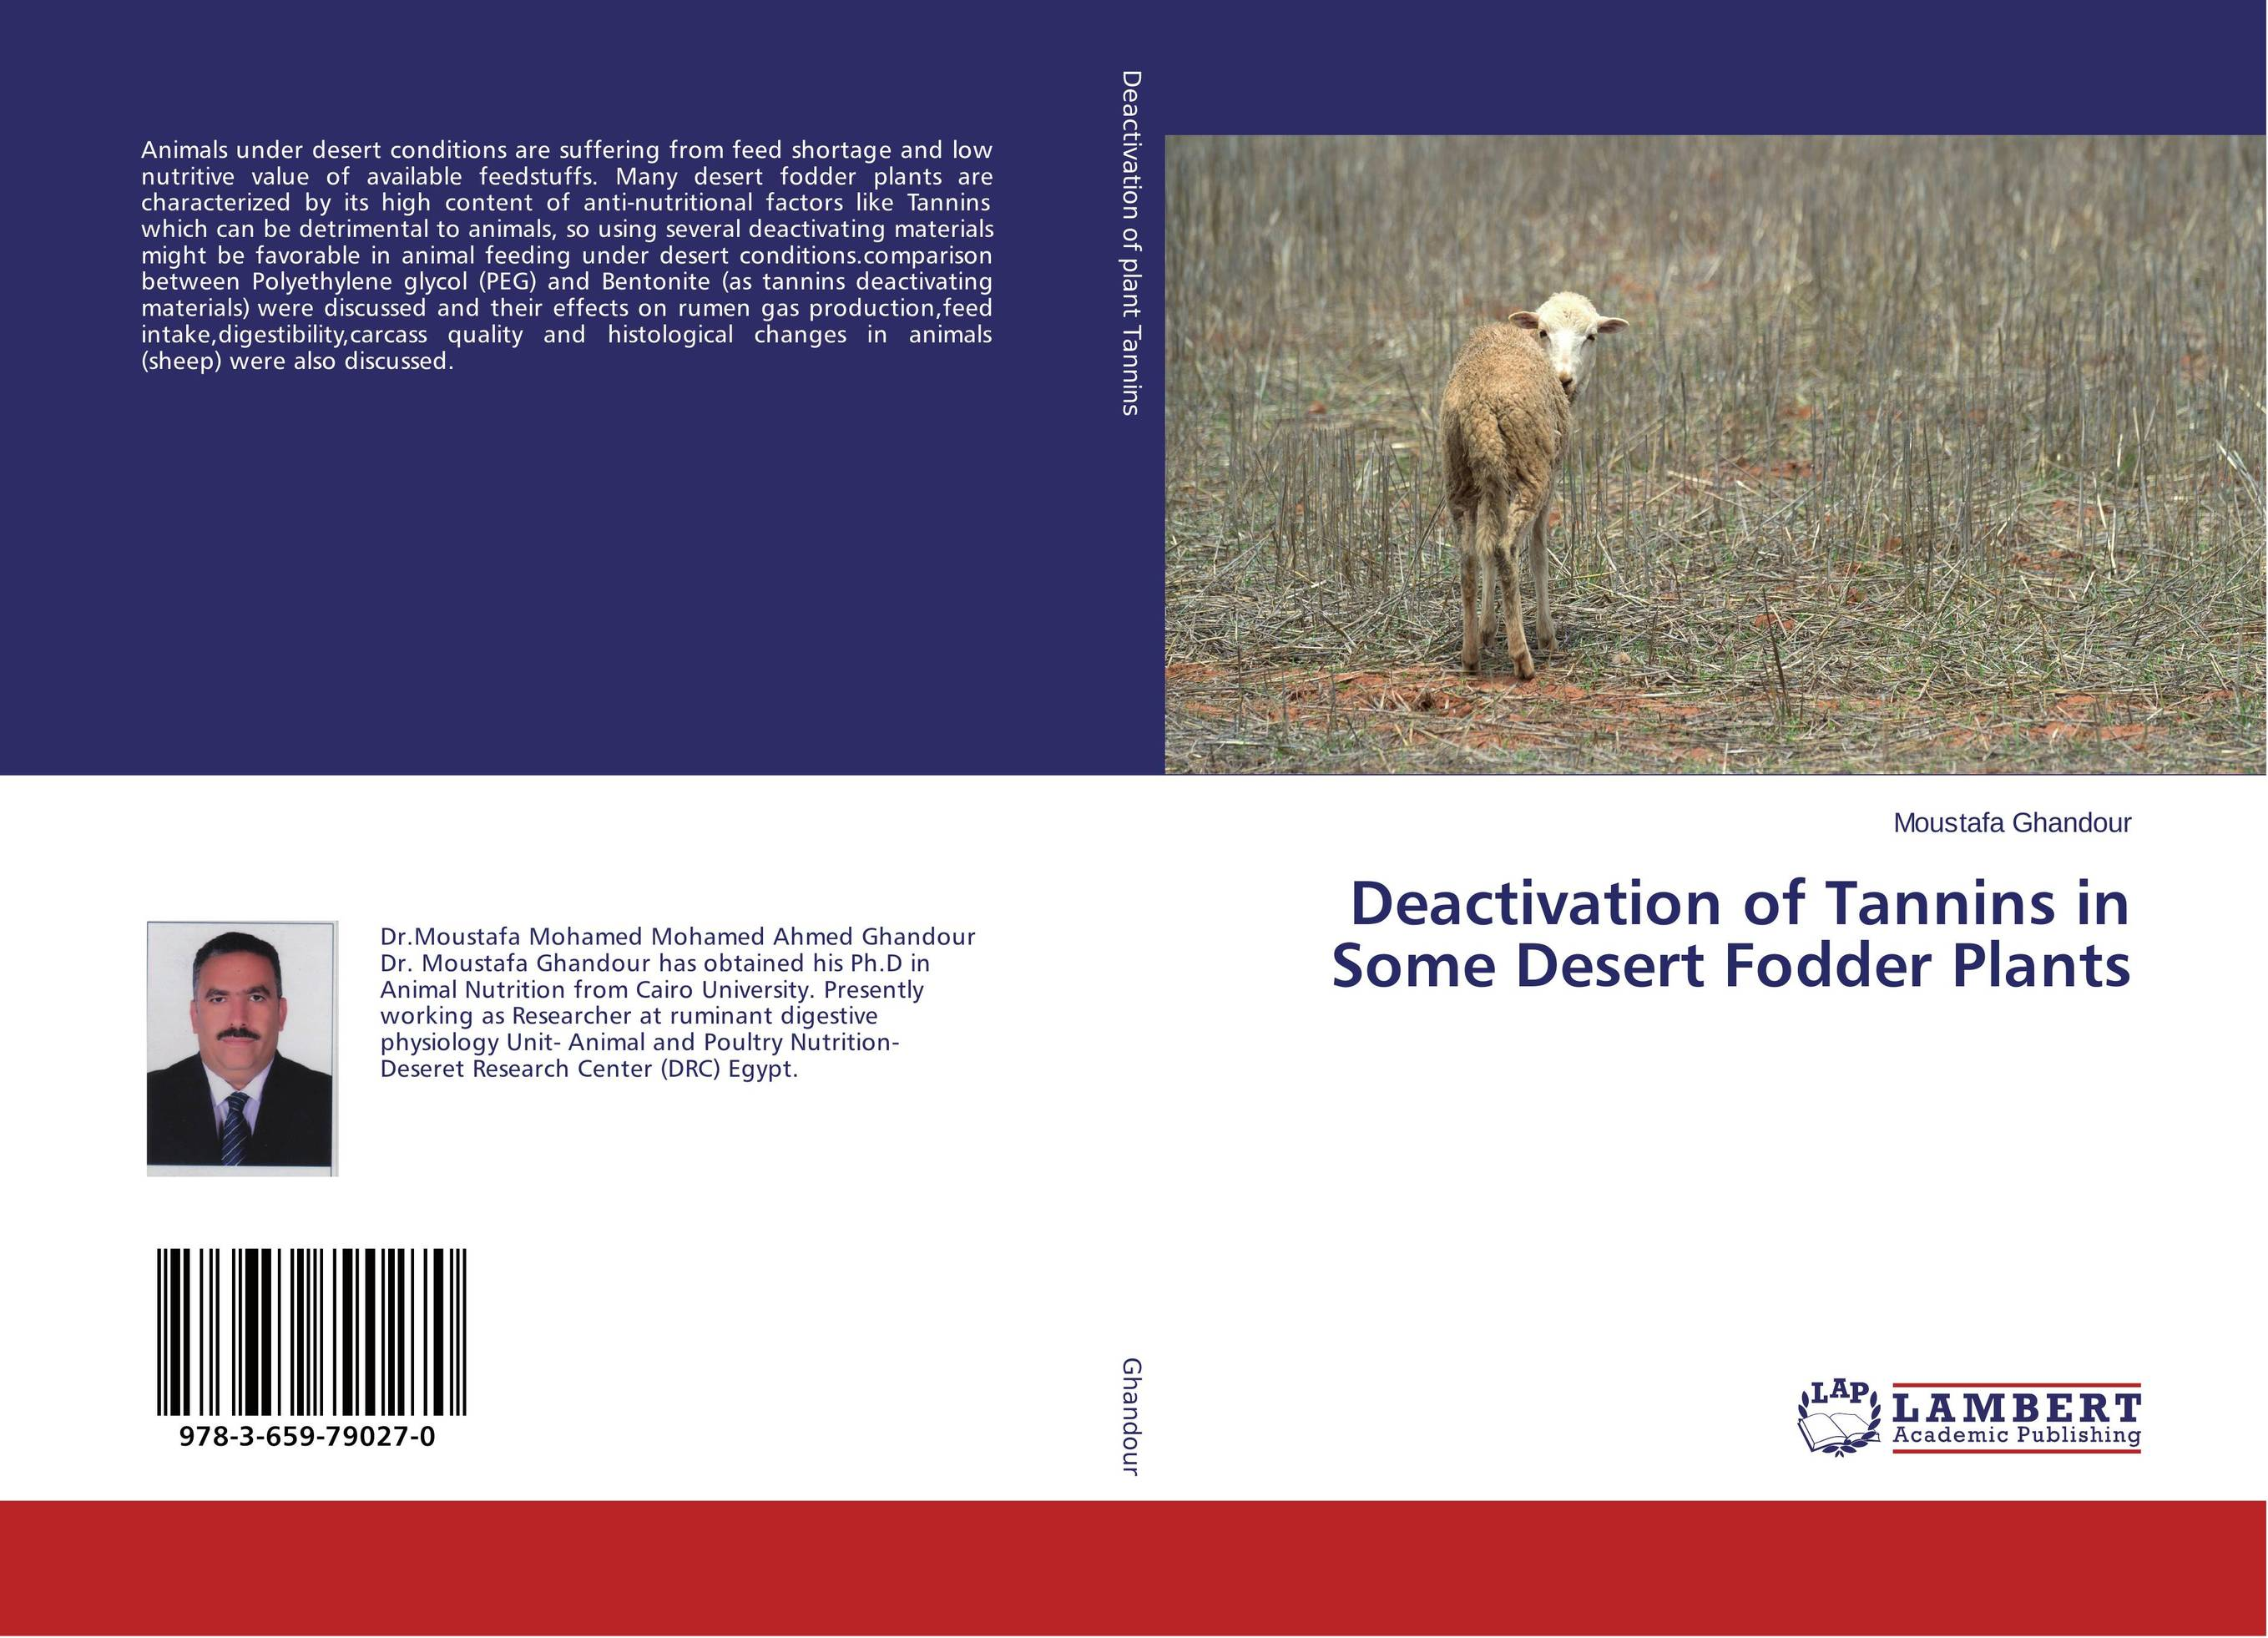 Deactivation of Tannins in Some Desert Fodder Plants adsorbent of mycotoxins as feed additives in farm animals